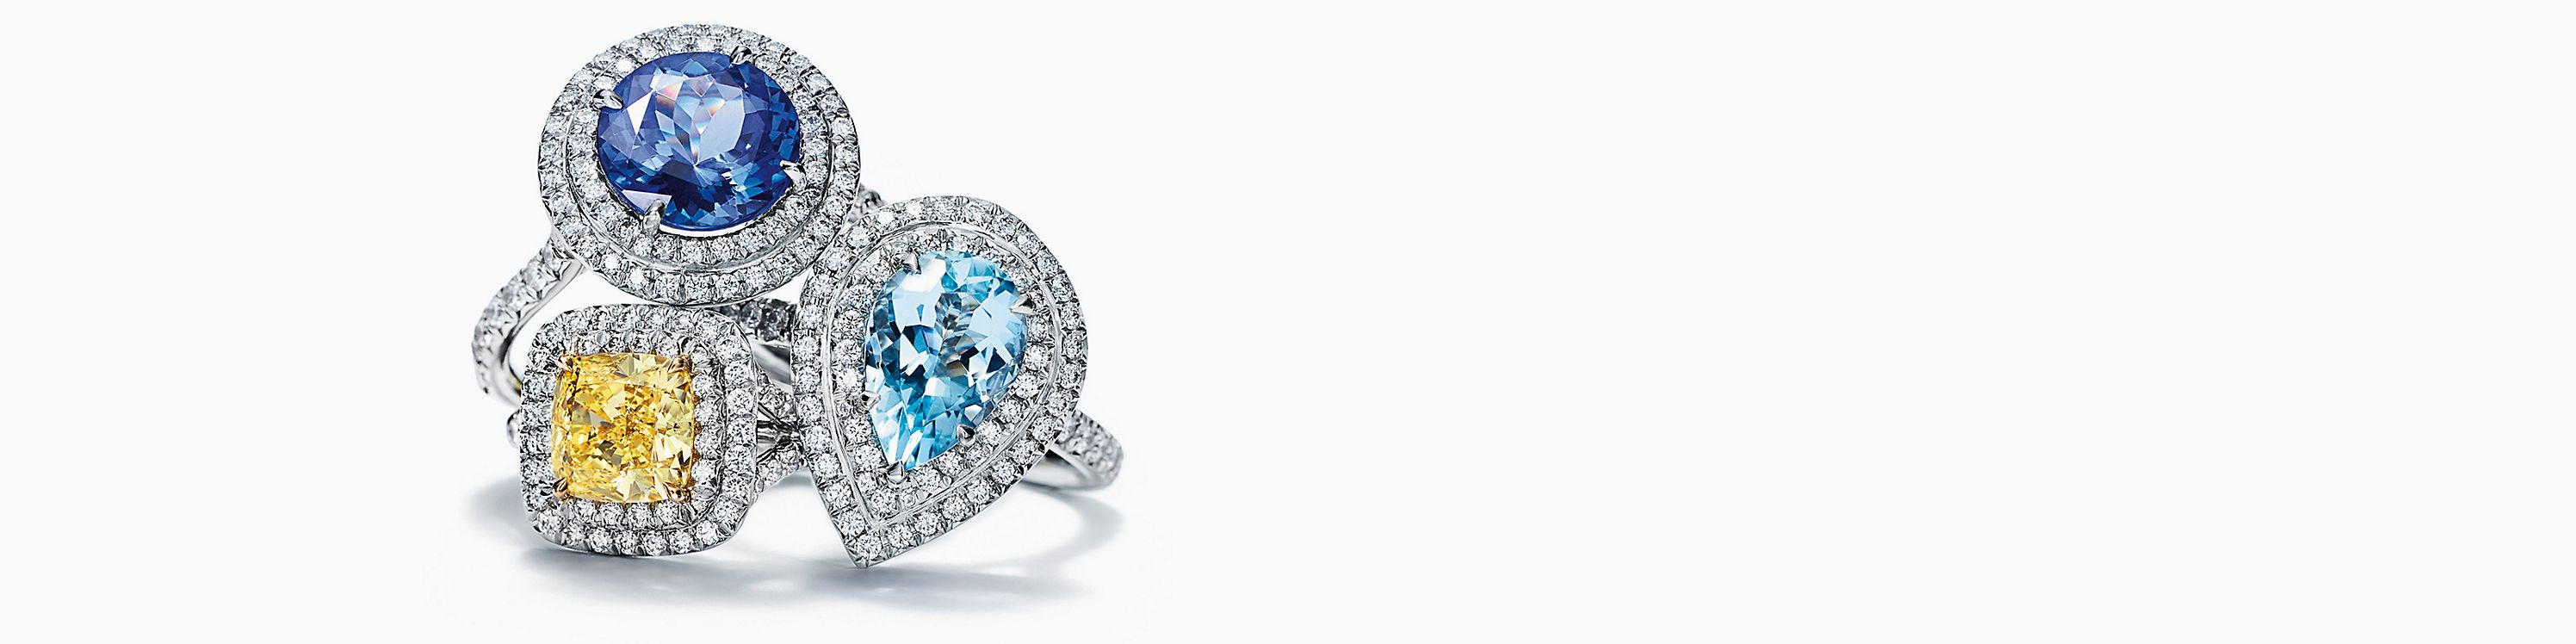 Tiffany Soleste® | Tiffany & Co.